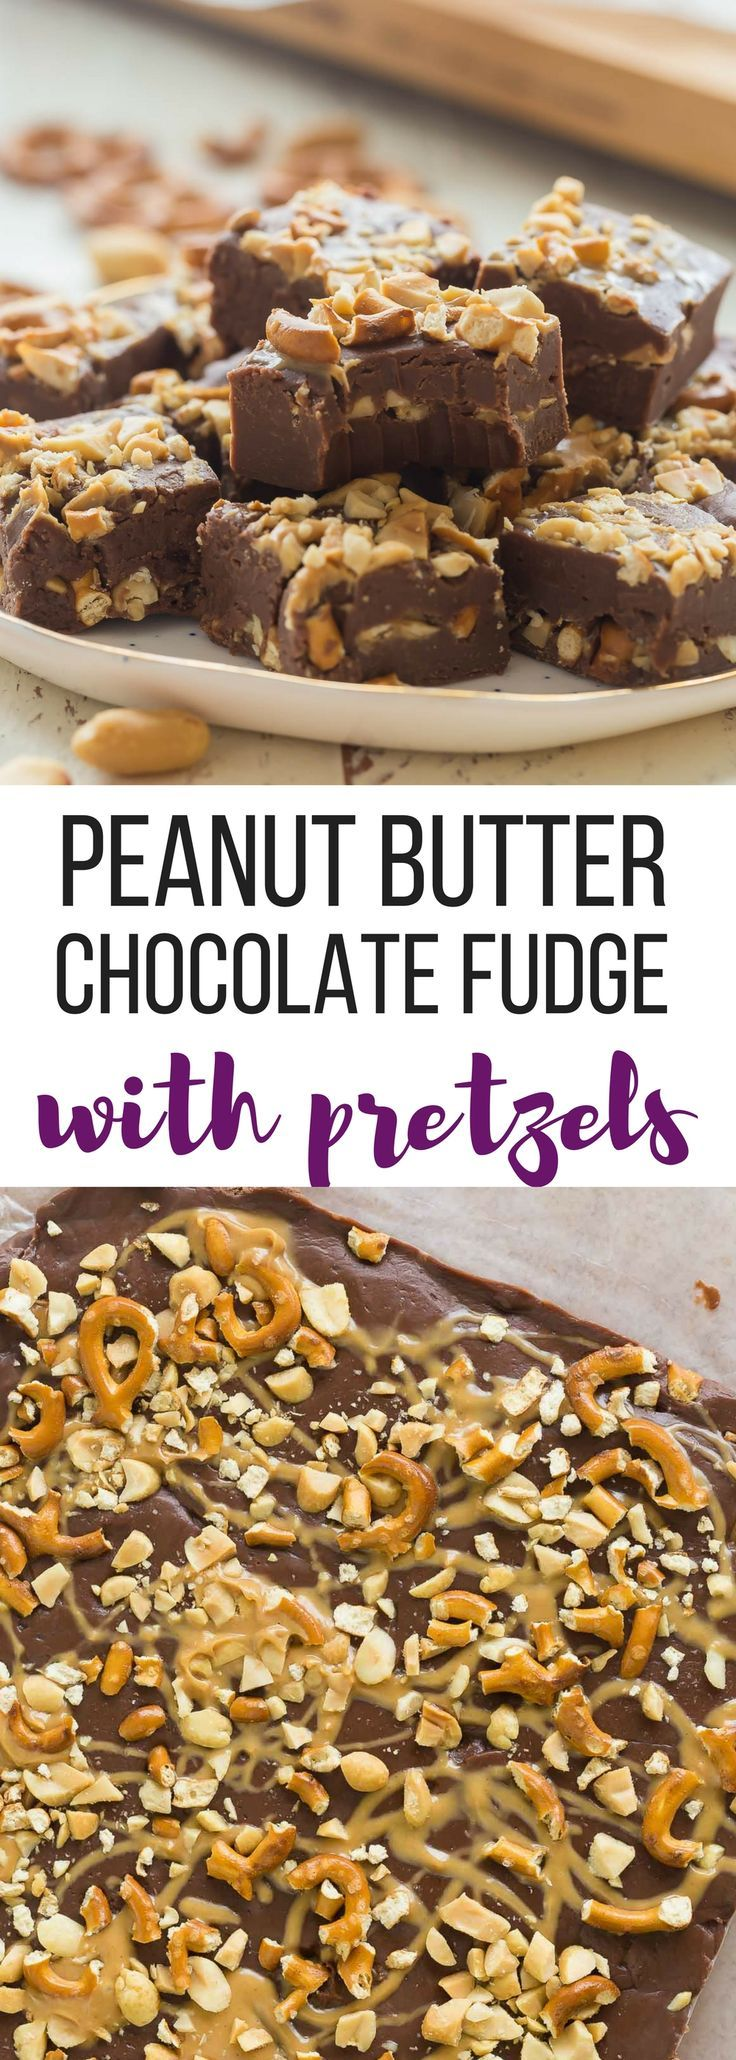 This Peanut Butter Chocolate Fudge with Pretzels is a sweet and salty Christmas candy that is SO easy to make! Just a few ingredients and no bake. Includes step by step recipe video. | easy dessert recipe | no bake dessert | Christmas candy | Christmas recipe | chubby hubby #fudge #chocolate